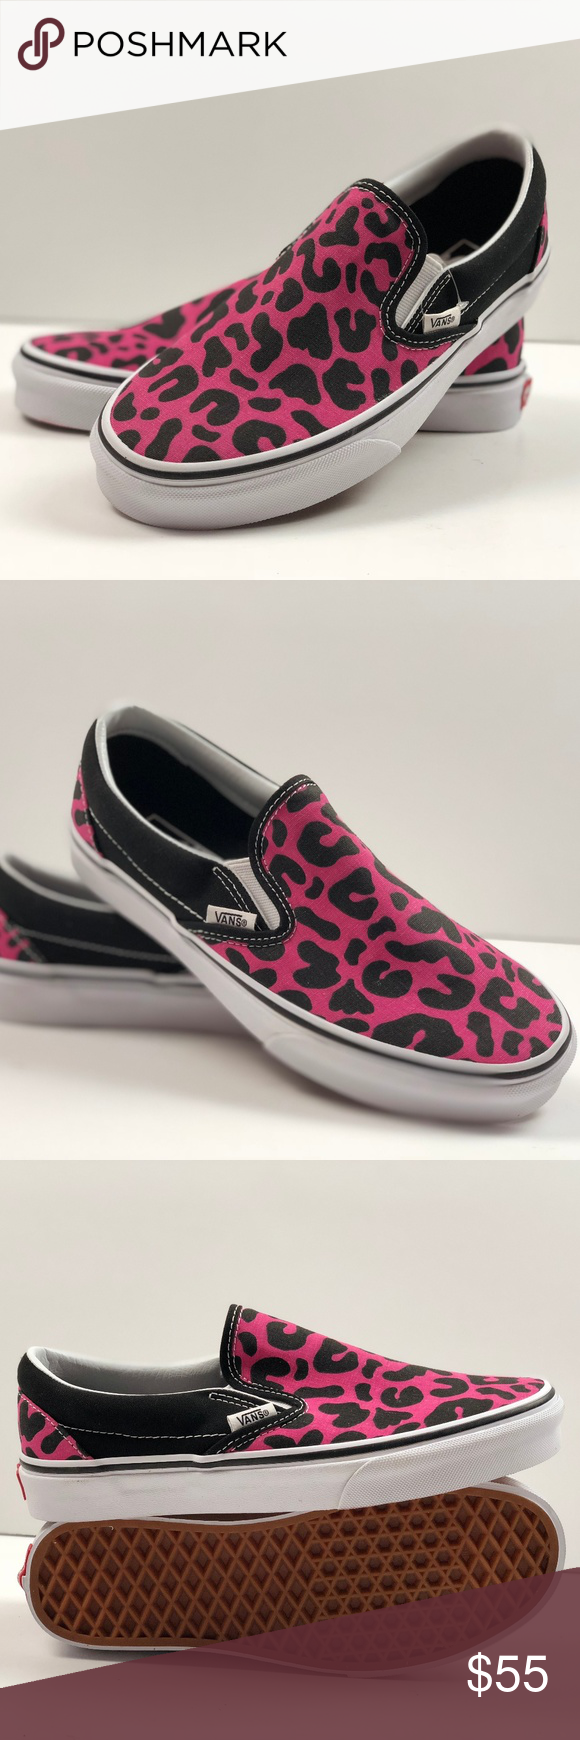 f4c9fbad22d514 Vans Classic Slip-on Leopard Pink Black Sneakers. Vans Classic Slip-on